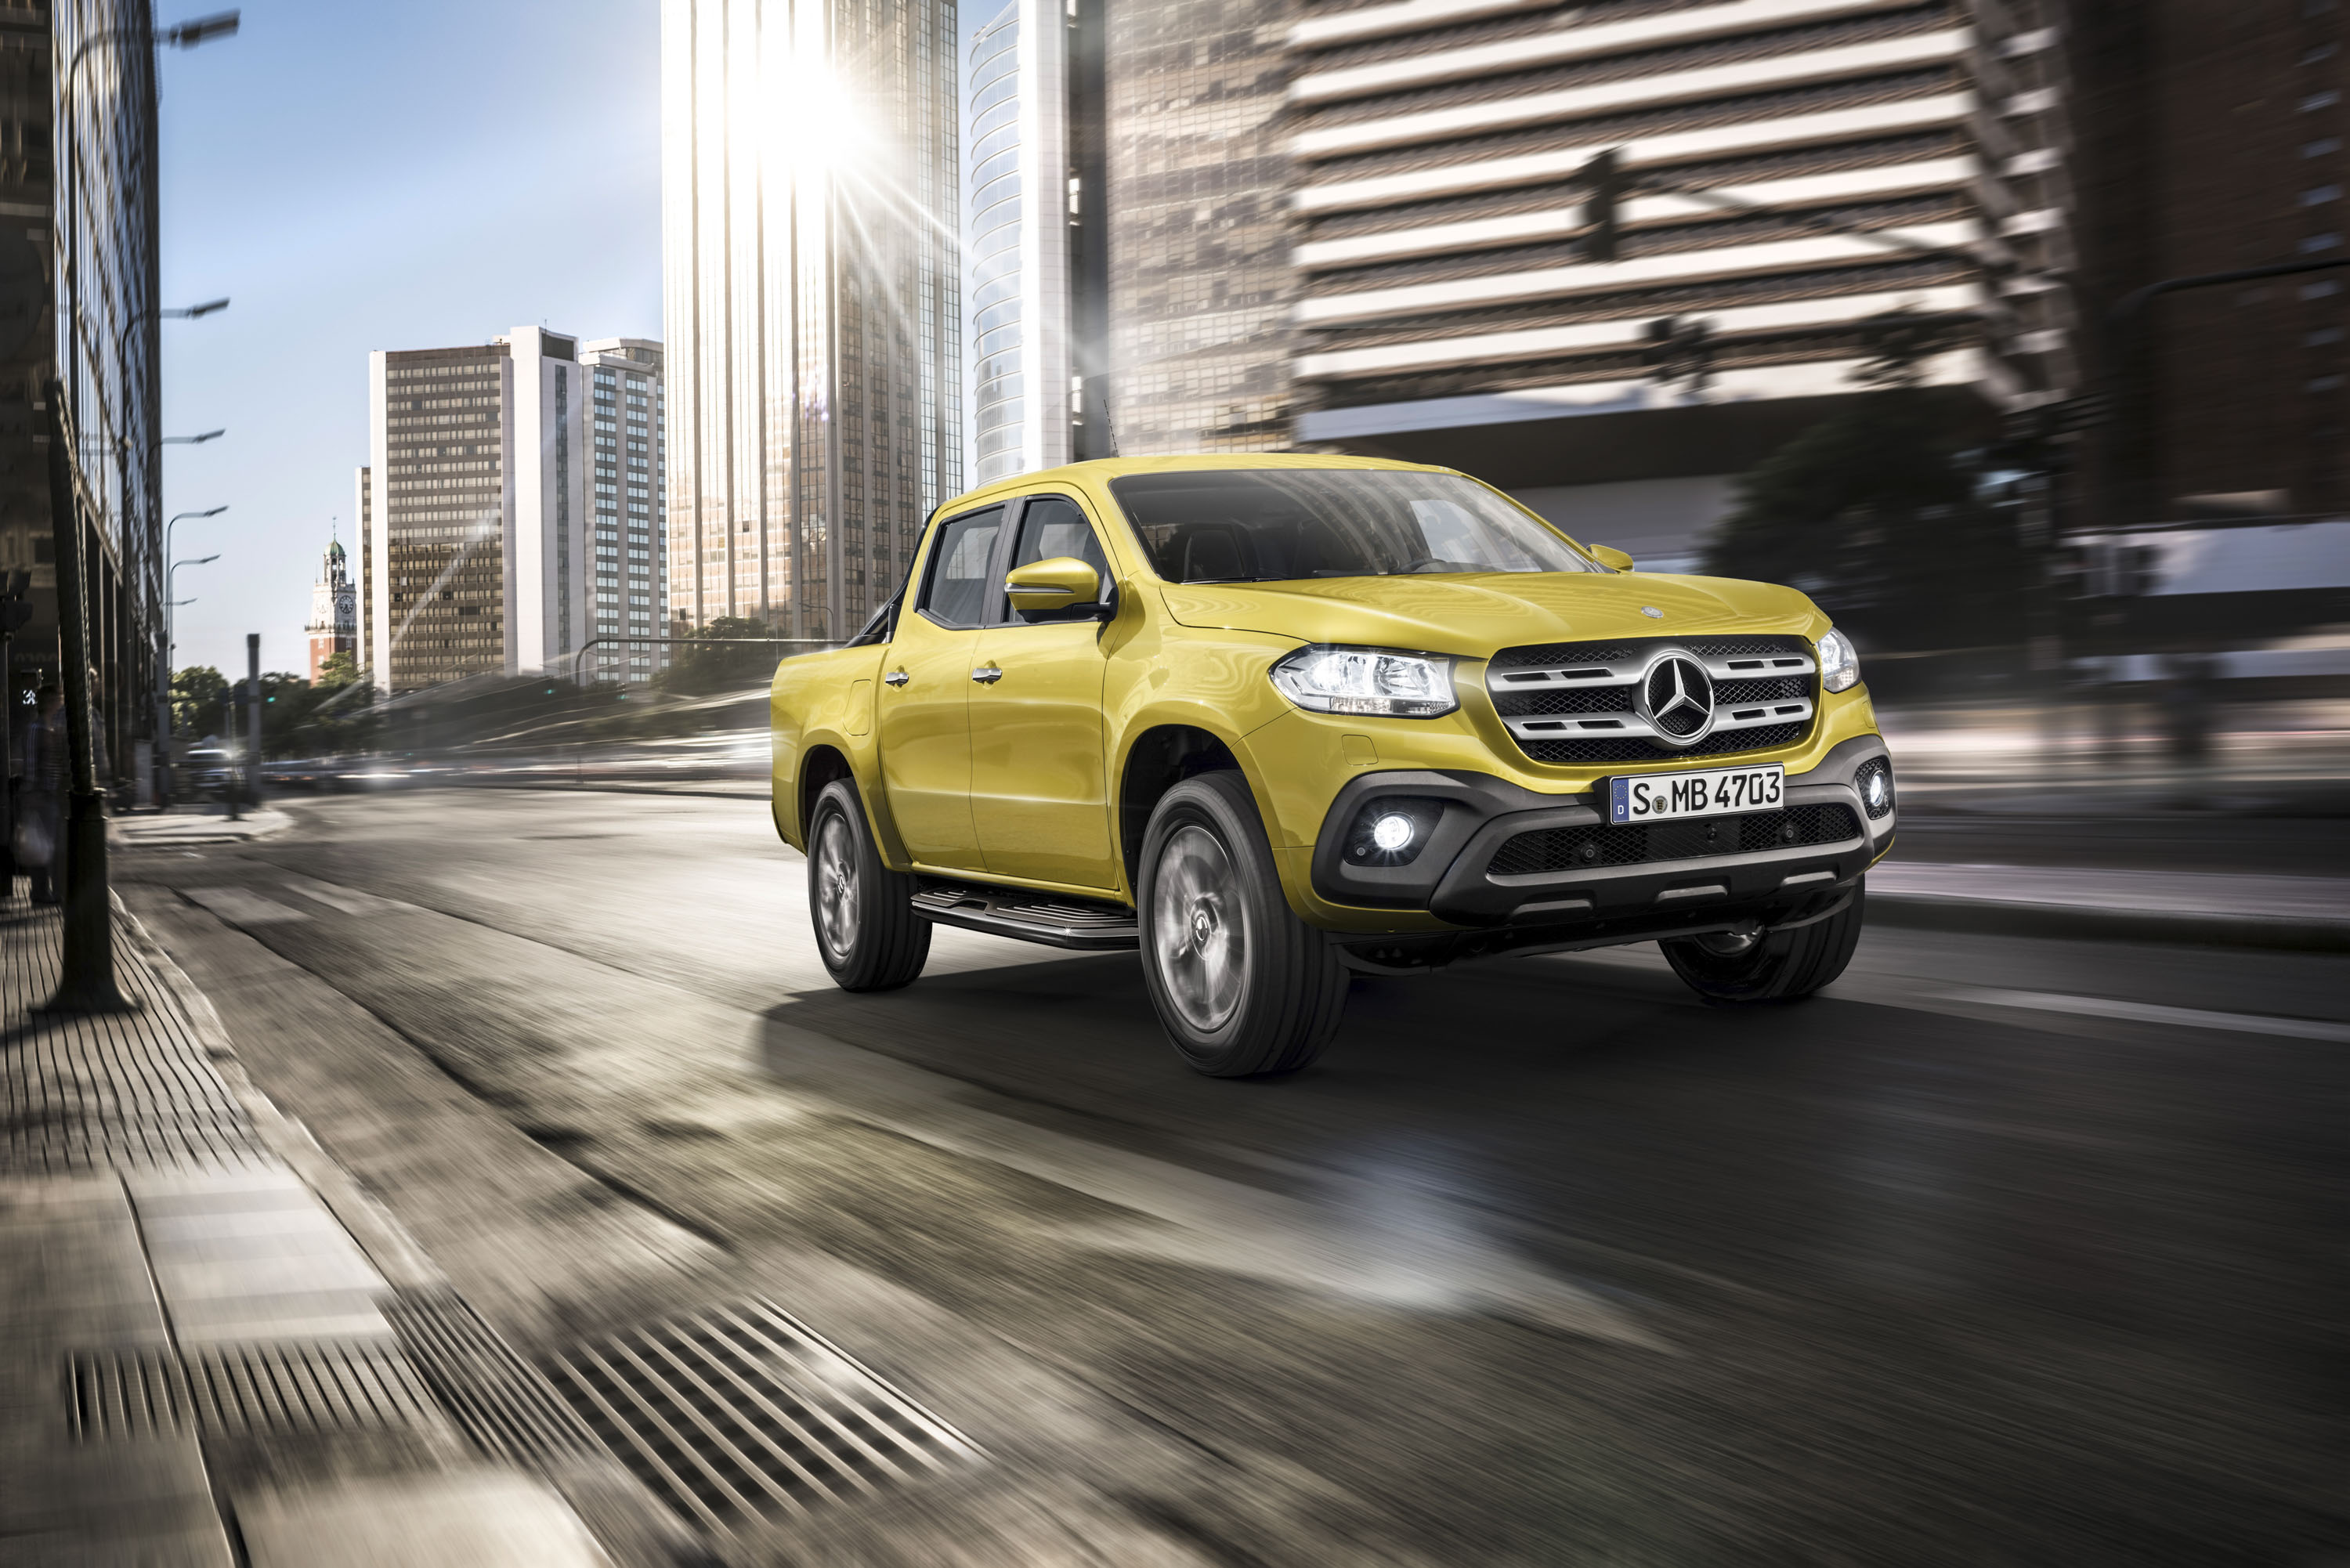 Mercedes Benz X Class Debuts In Cape Town South Africa Top Speed